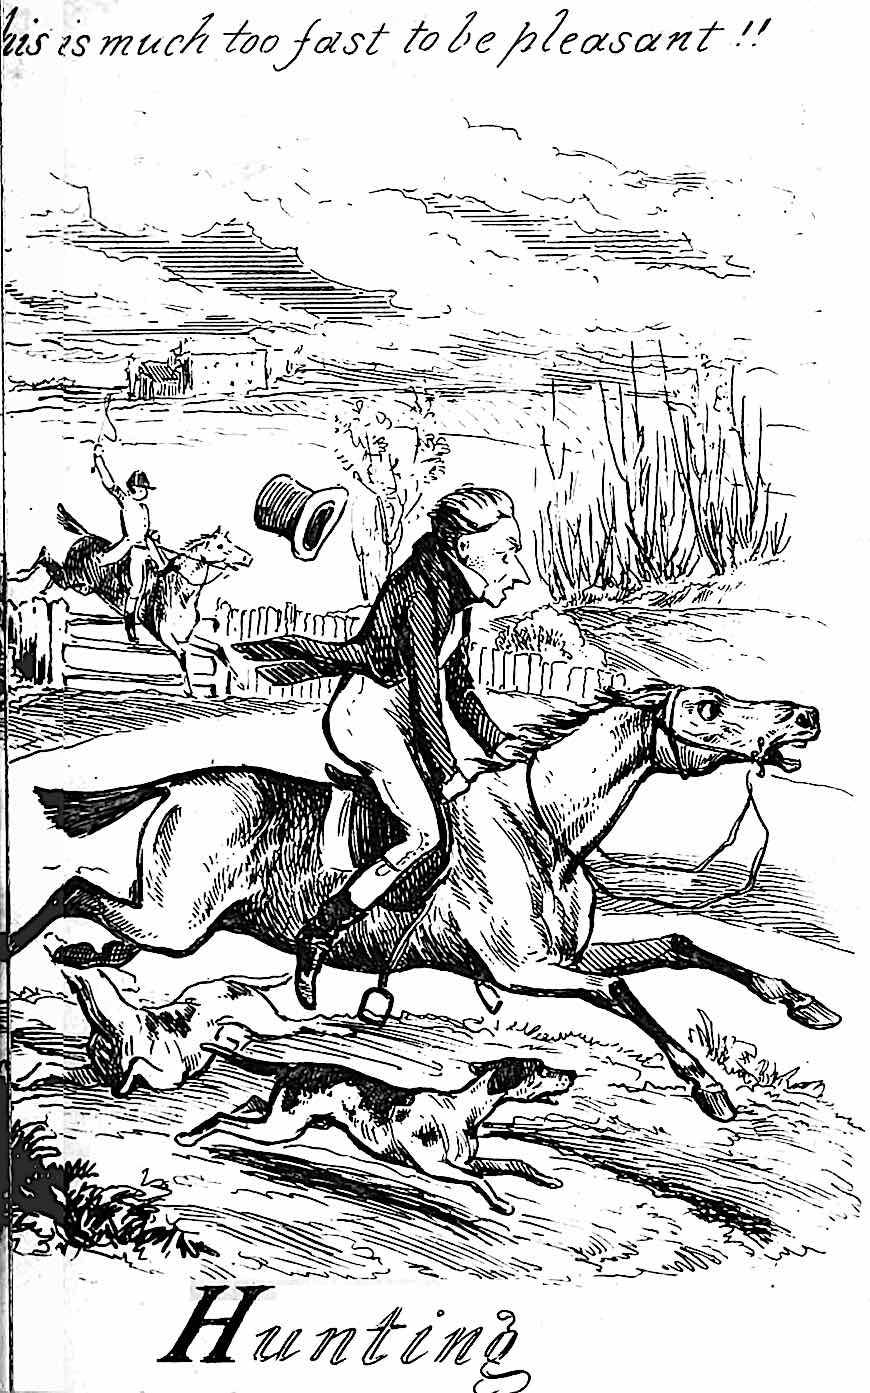 a George Cruikshank cartoon about fox hunting, This is much too fast to be pleasant!!